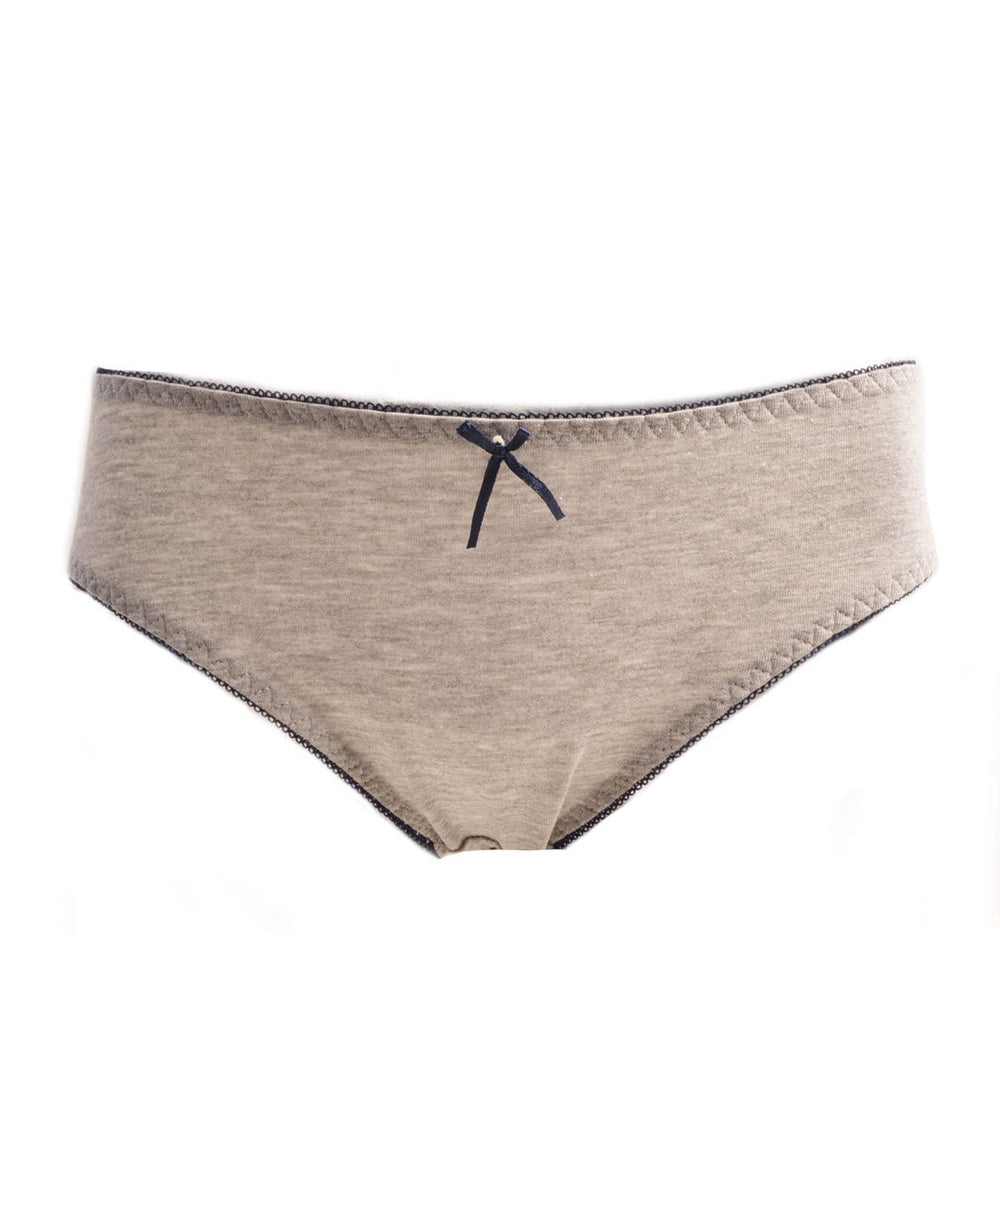 Vision Intimates Essential Panty